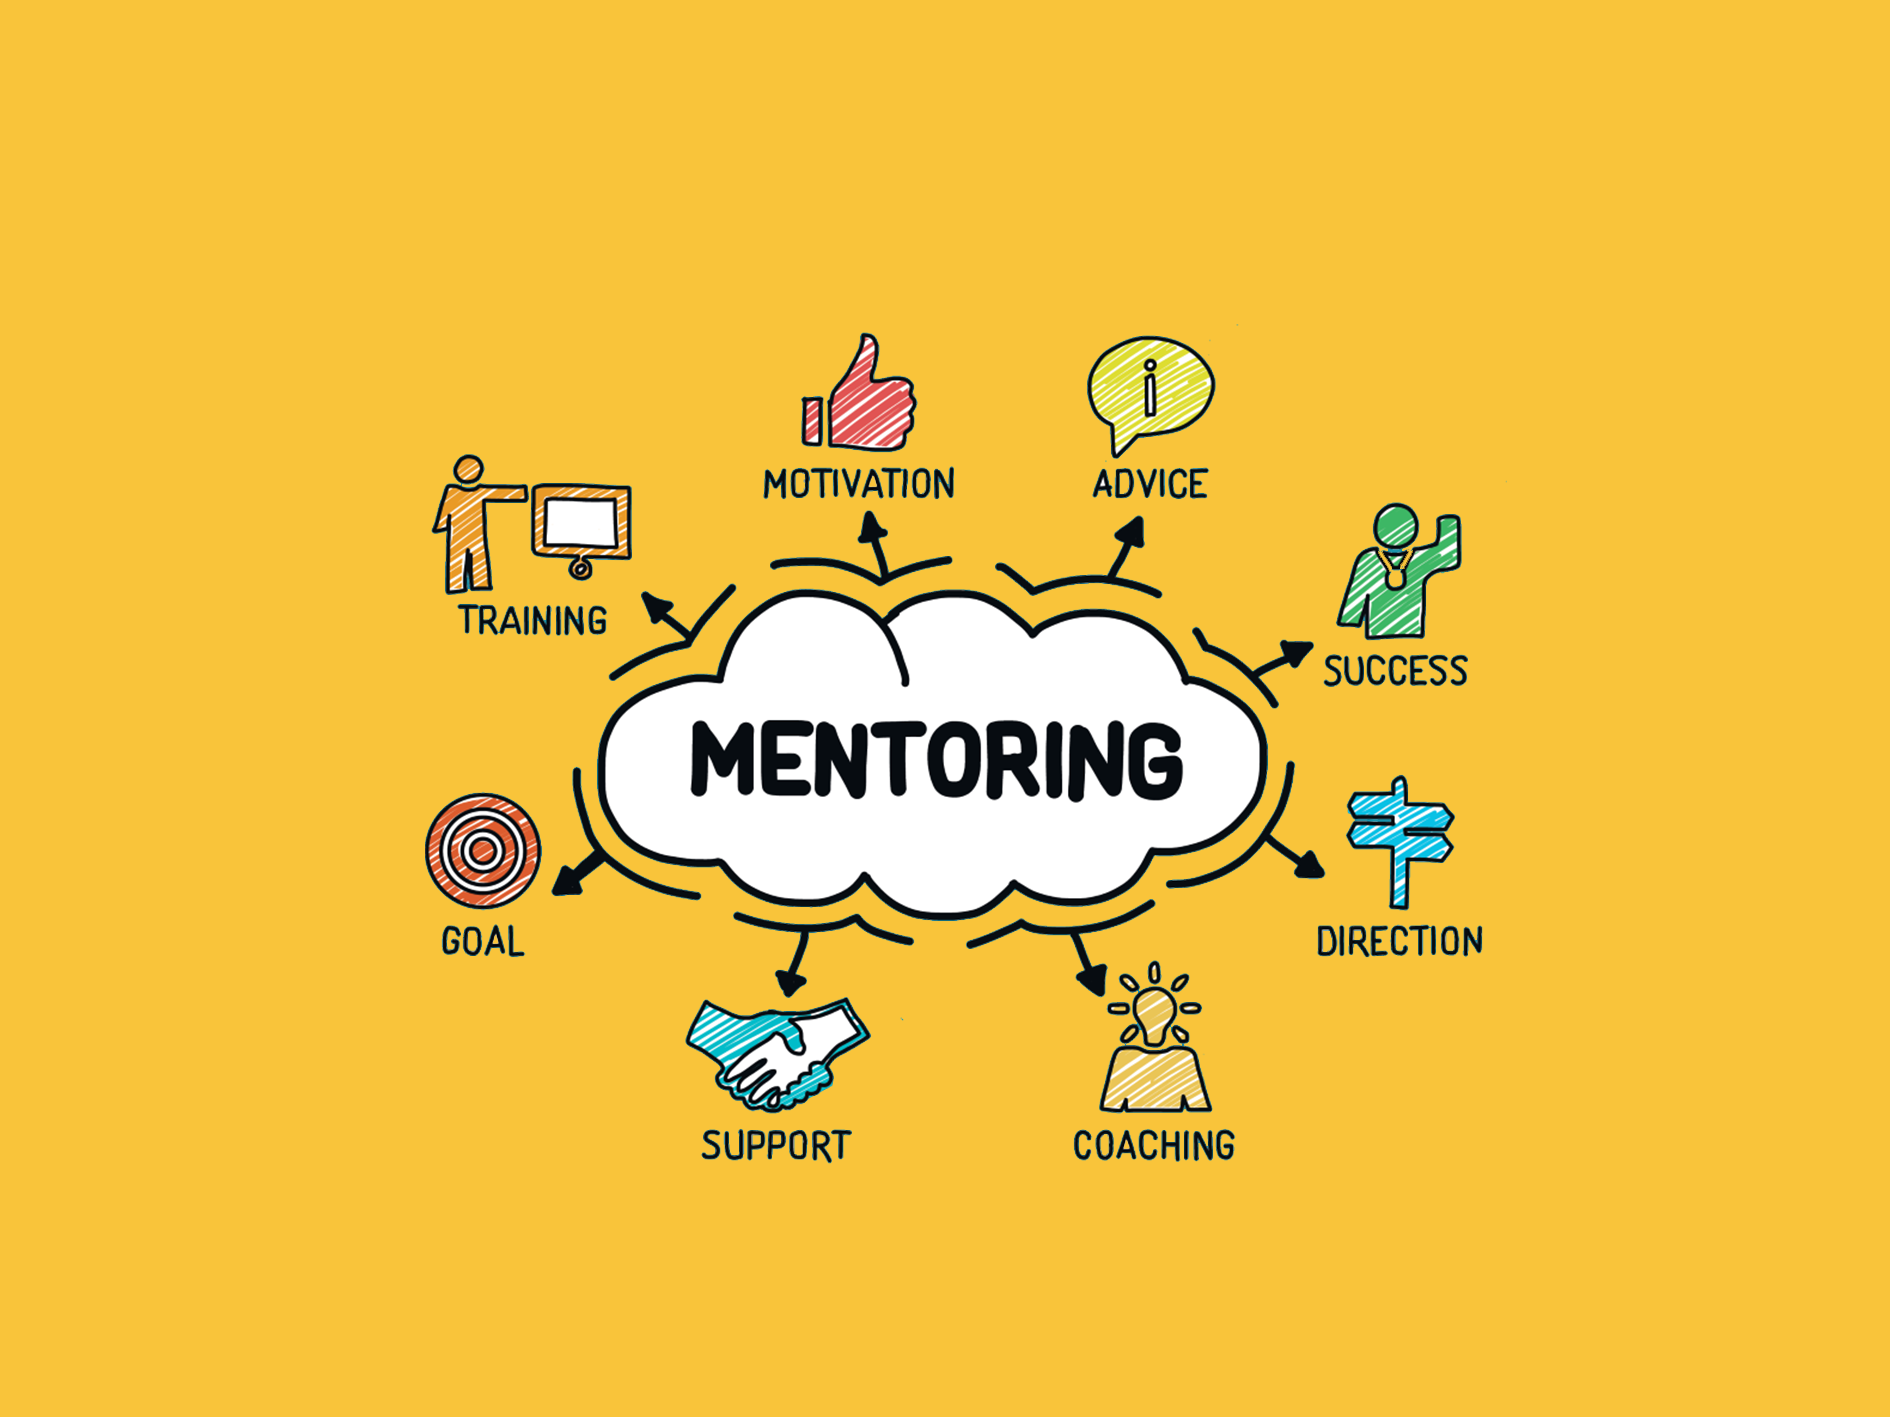 Why is a mentoring service enjoyable and relavant for an alumni community?